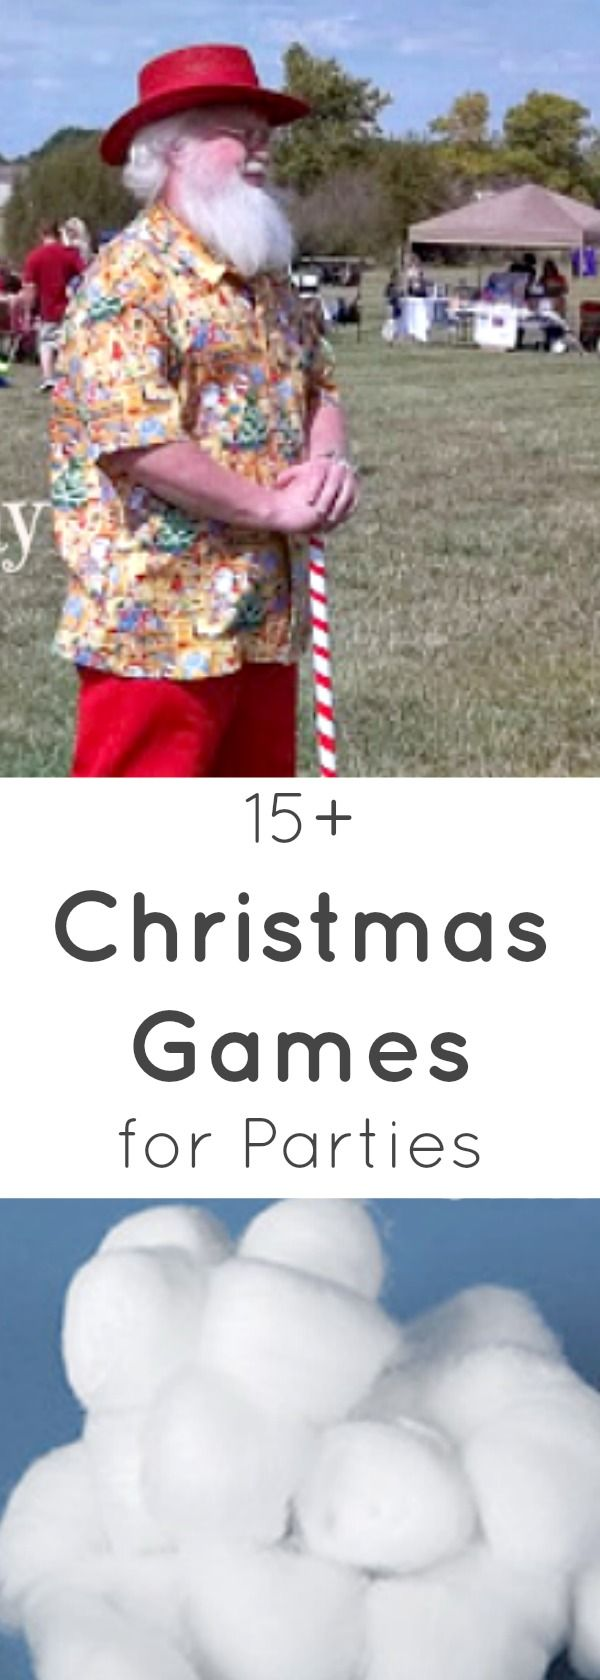 Over 15 games to play at Christmas Parties! Fun for groups, families, and the #officechirstmasparty #gamesforgroups #gamesforkids #gamesforgrownups